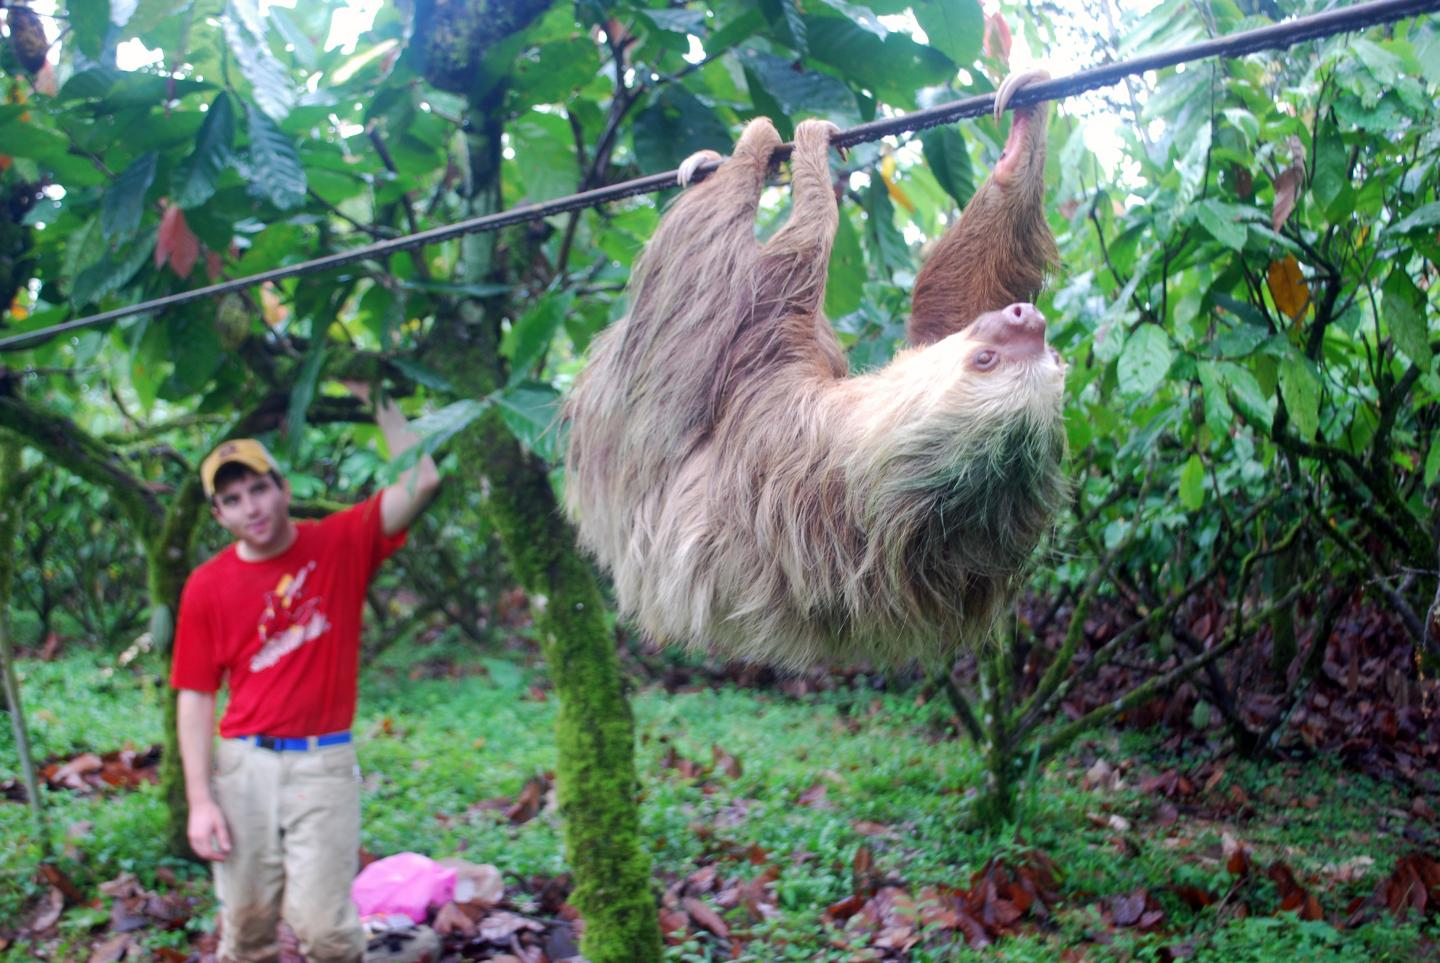 Sloth Moving on a Cable